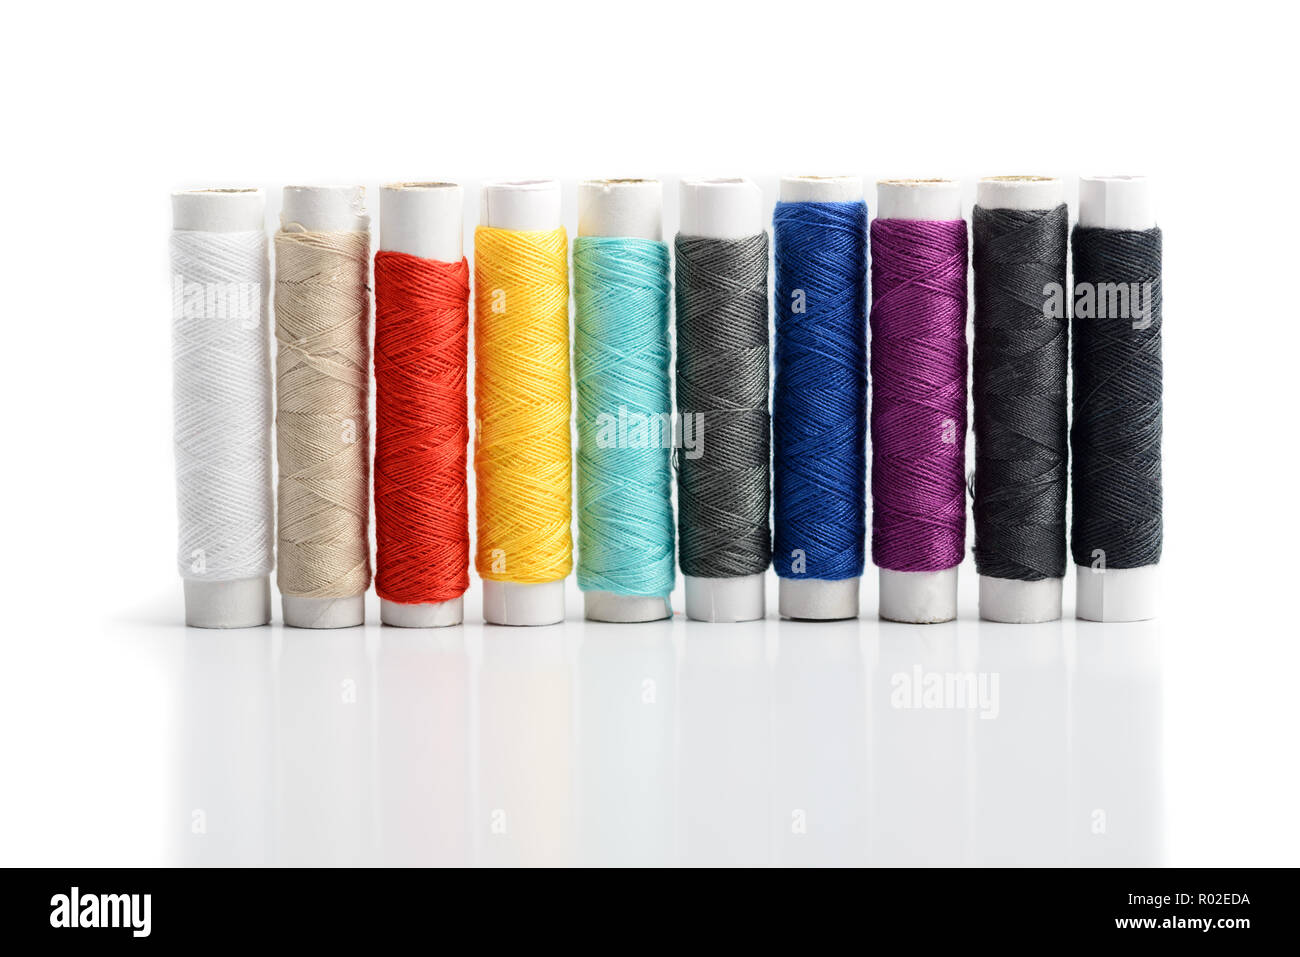 Row set of color sewing threads isolated - Stock Image